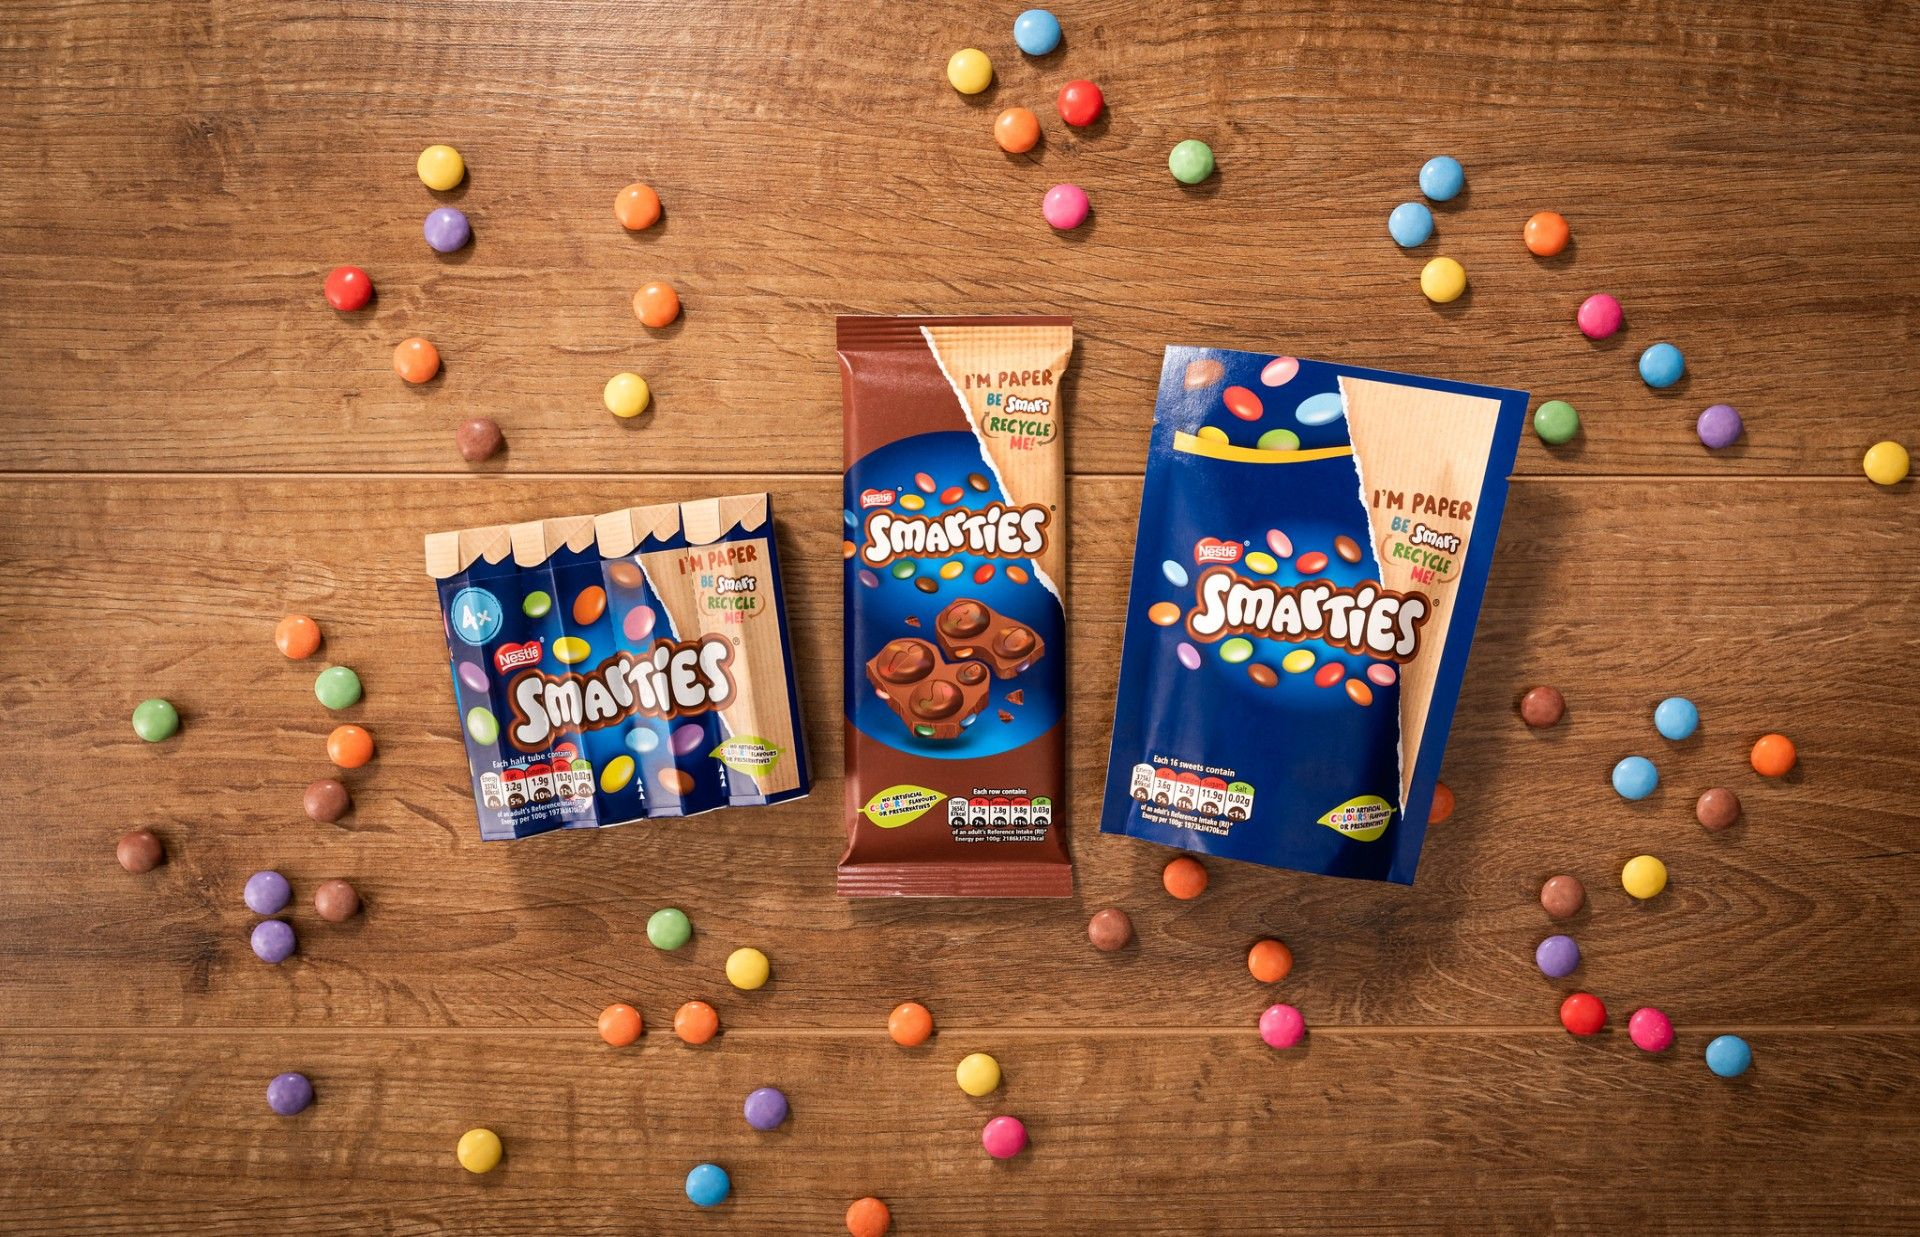 Nestlé Australia uses recyclable paper packaging for Smarties